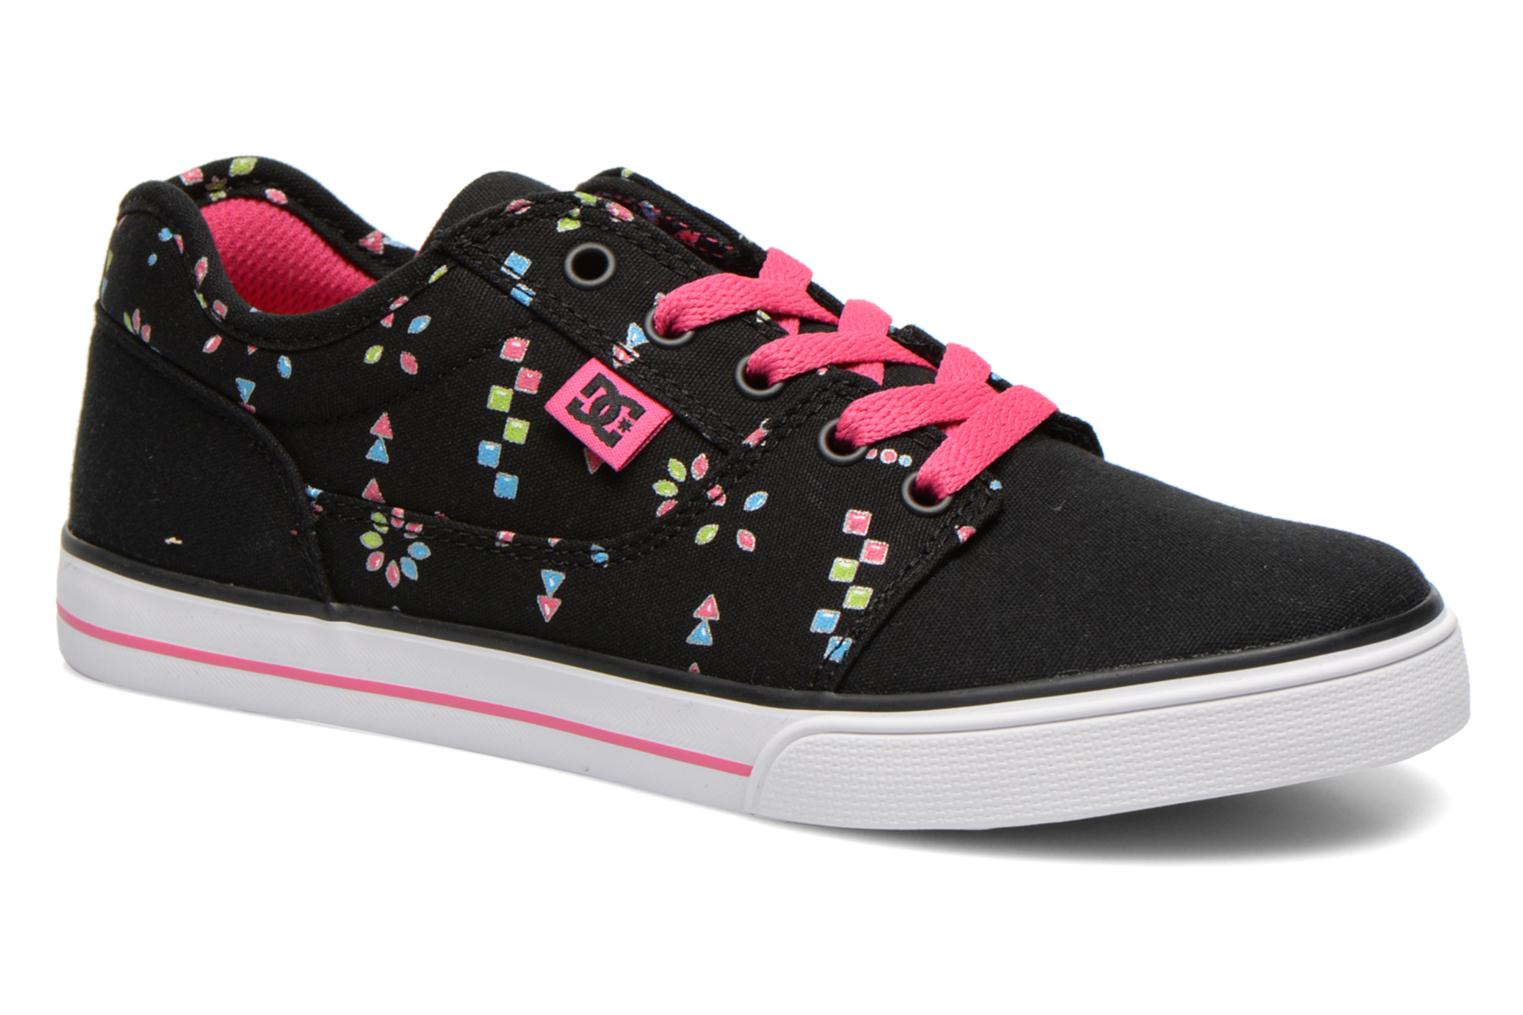 TONIK TX SE Black/pink